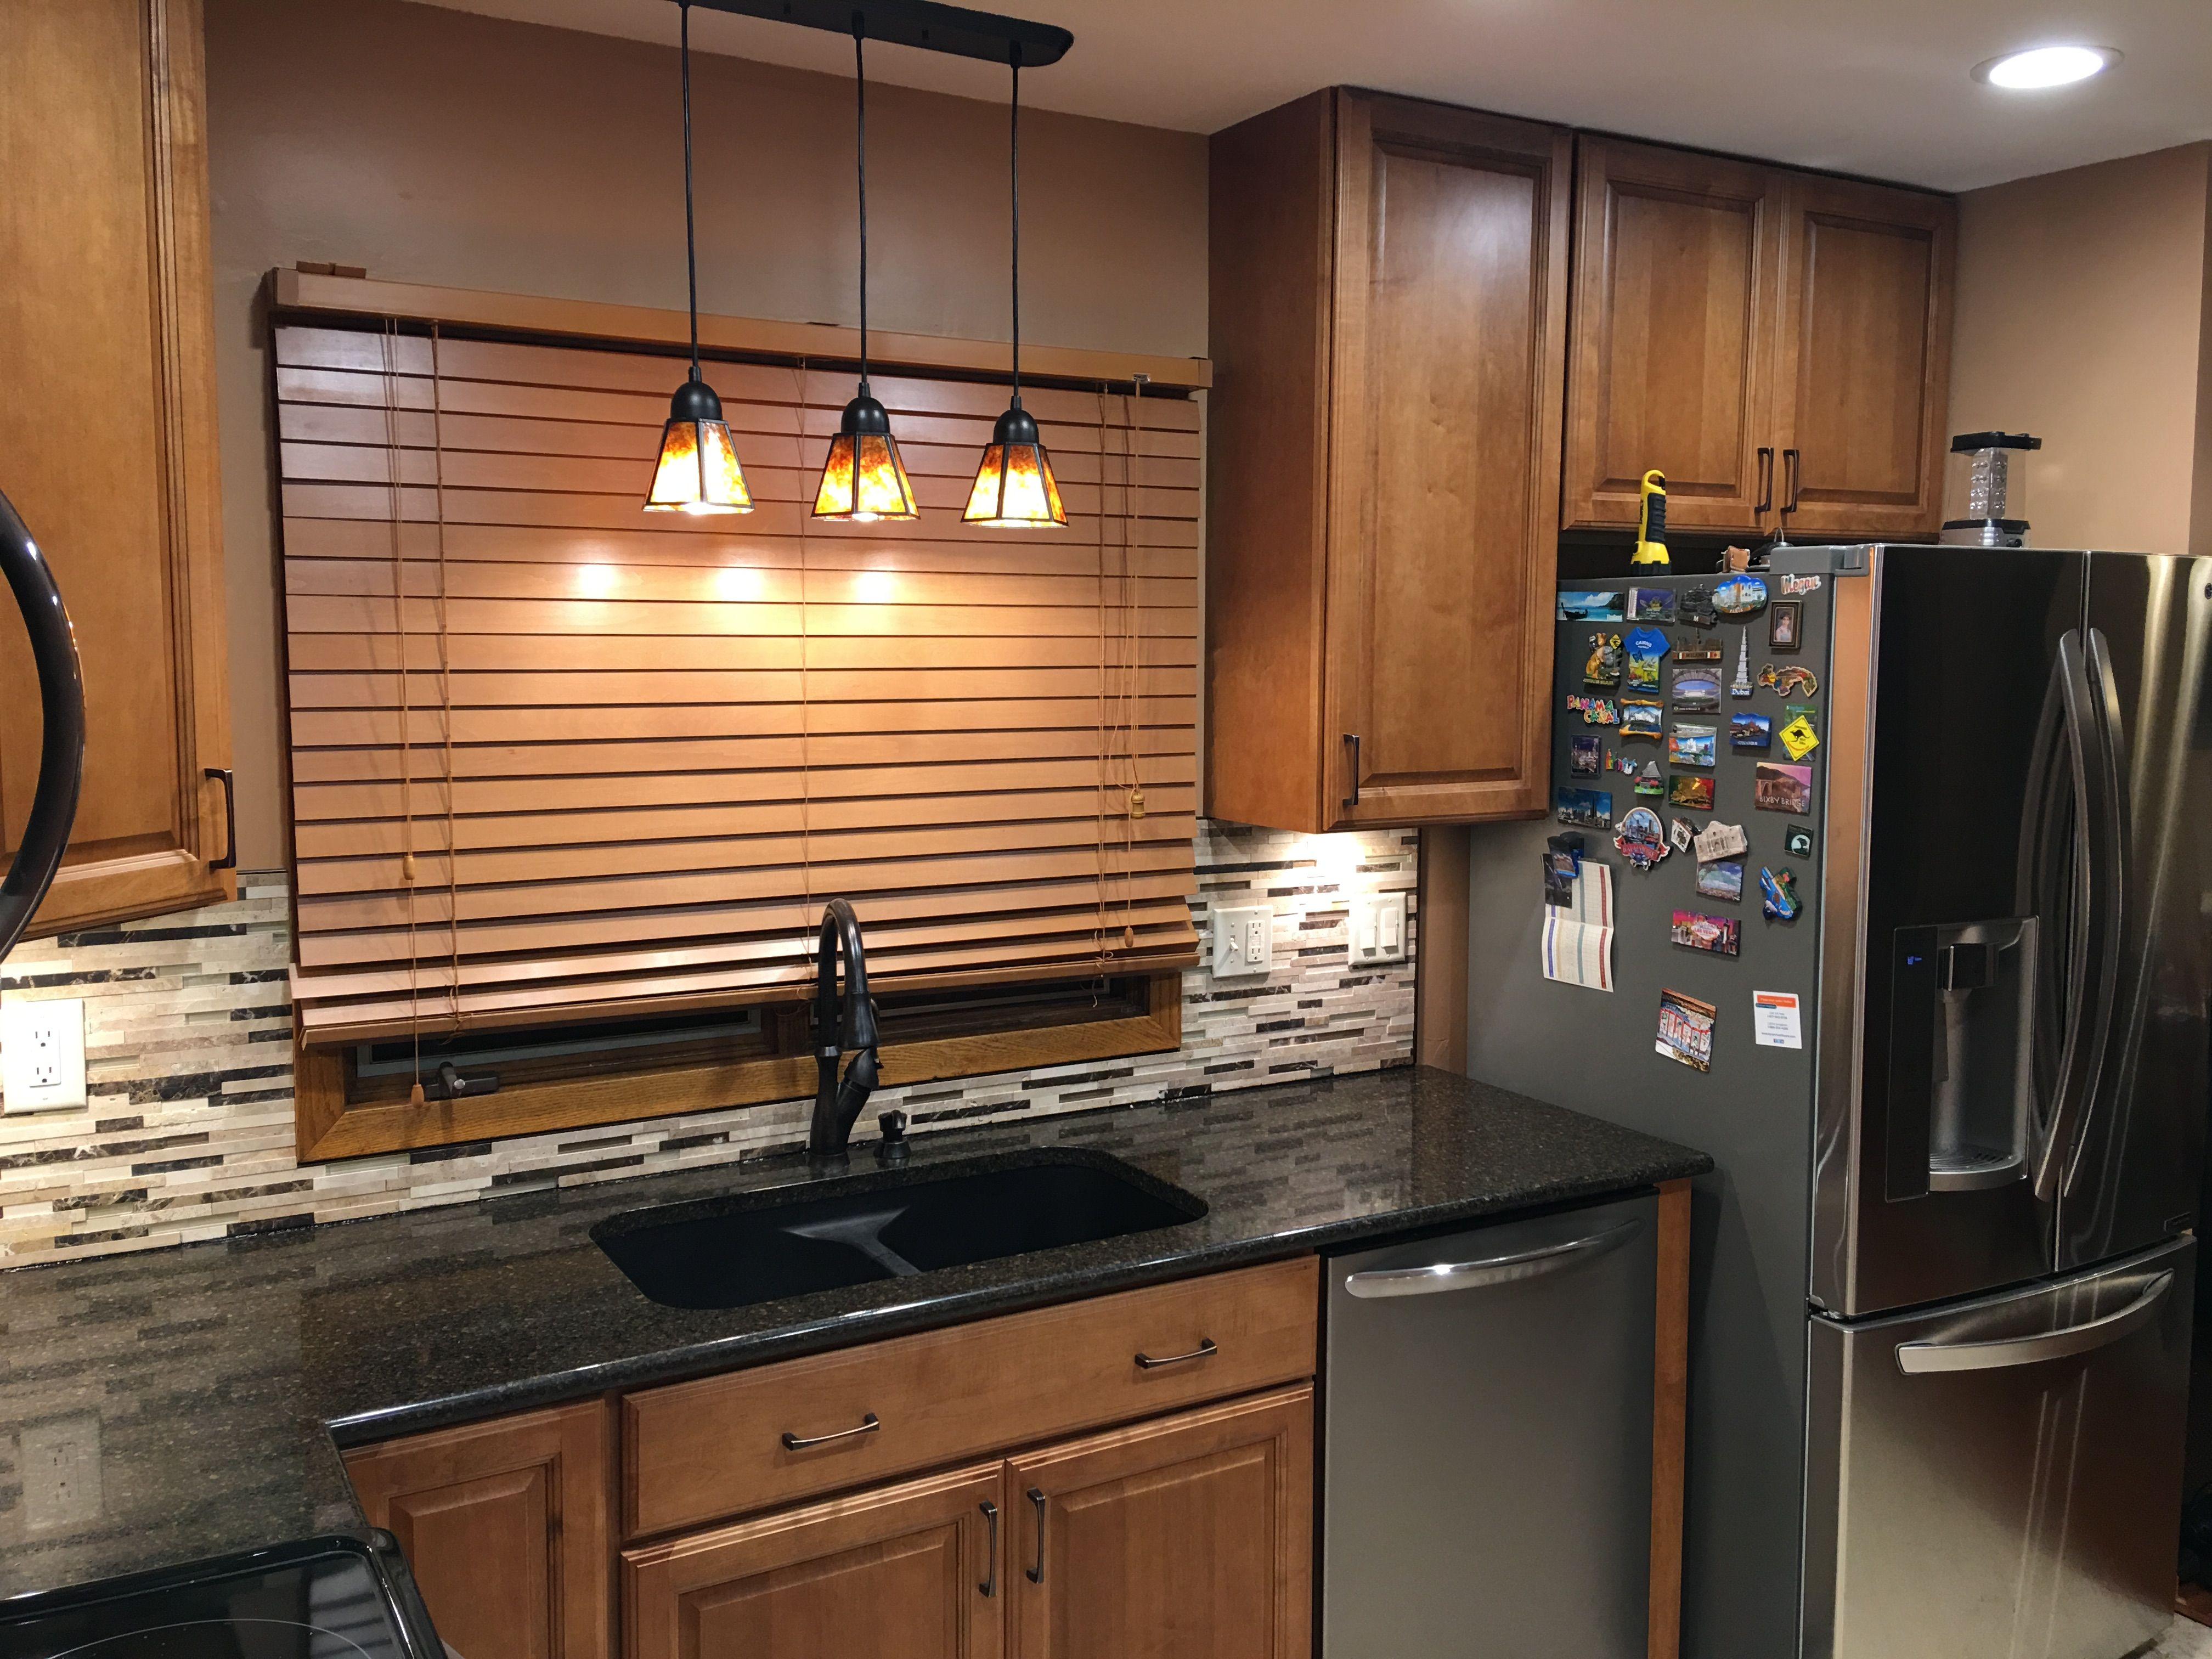 Pendant Lights And Fridge Magnets Kitchen Renovation Brown Cabinets Under Cabinet Lights